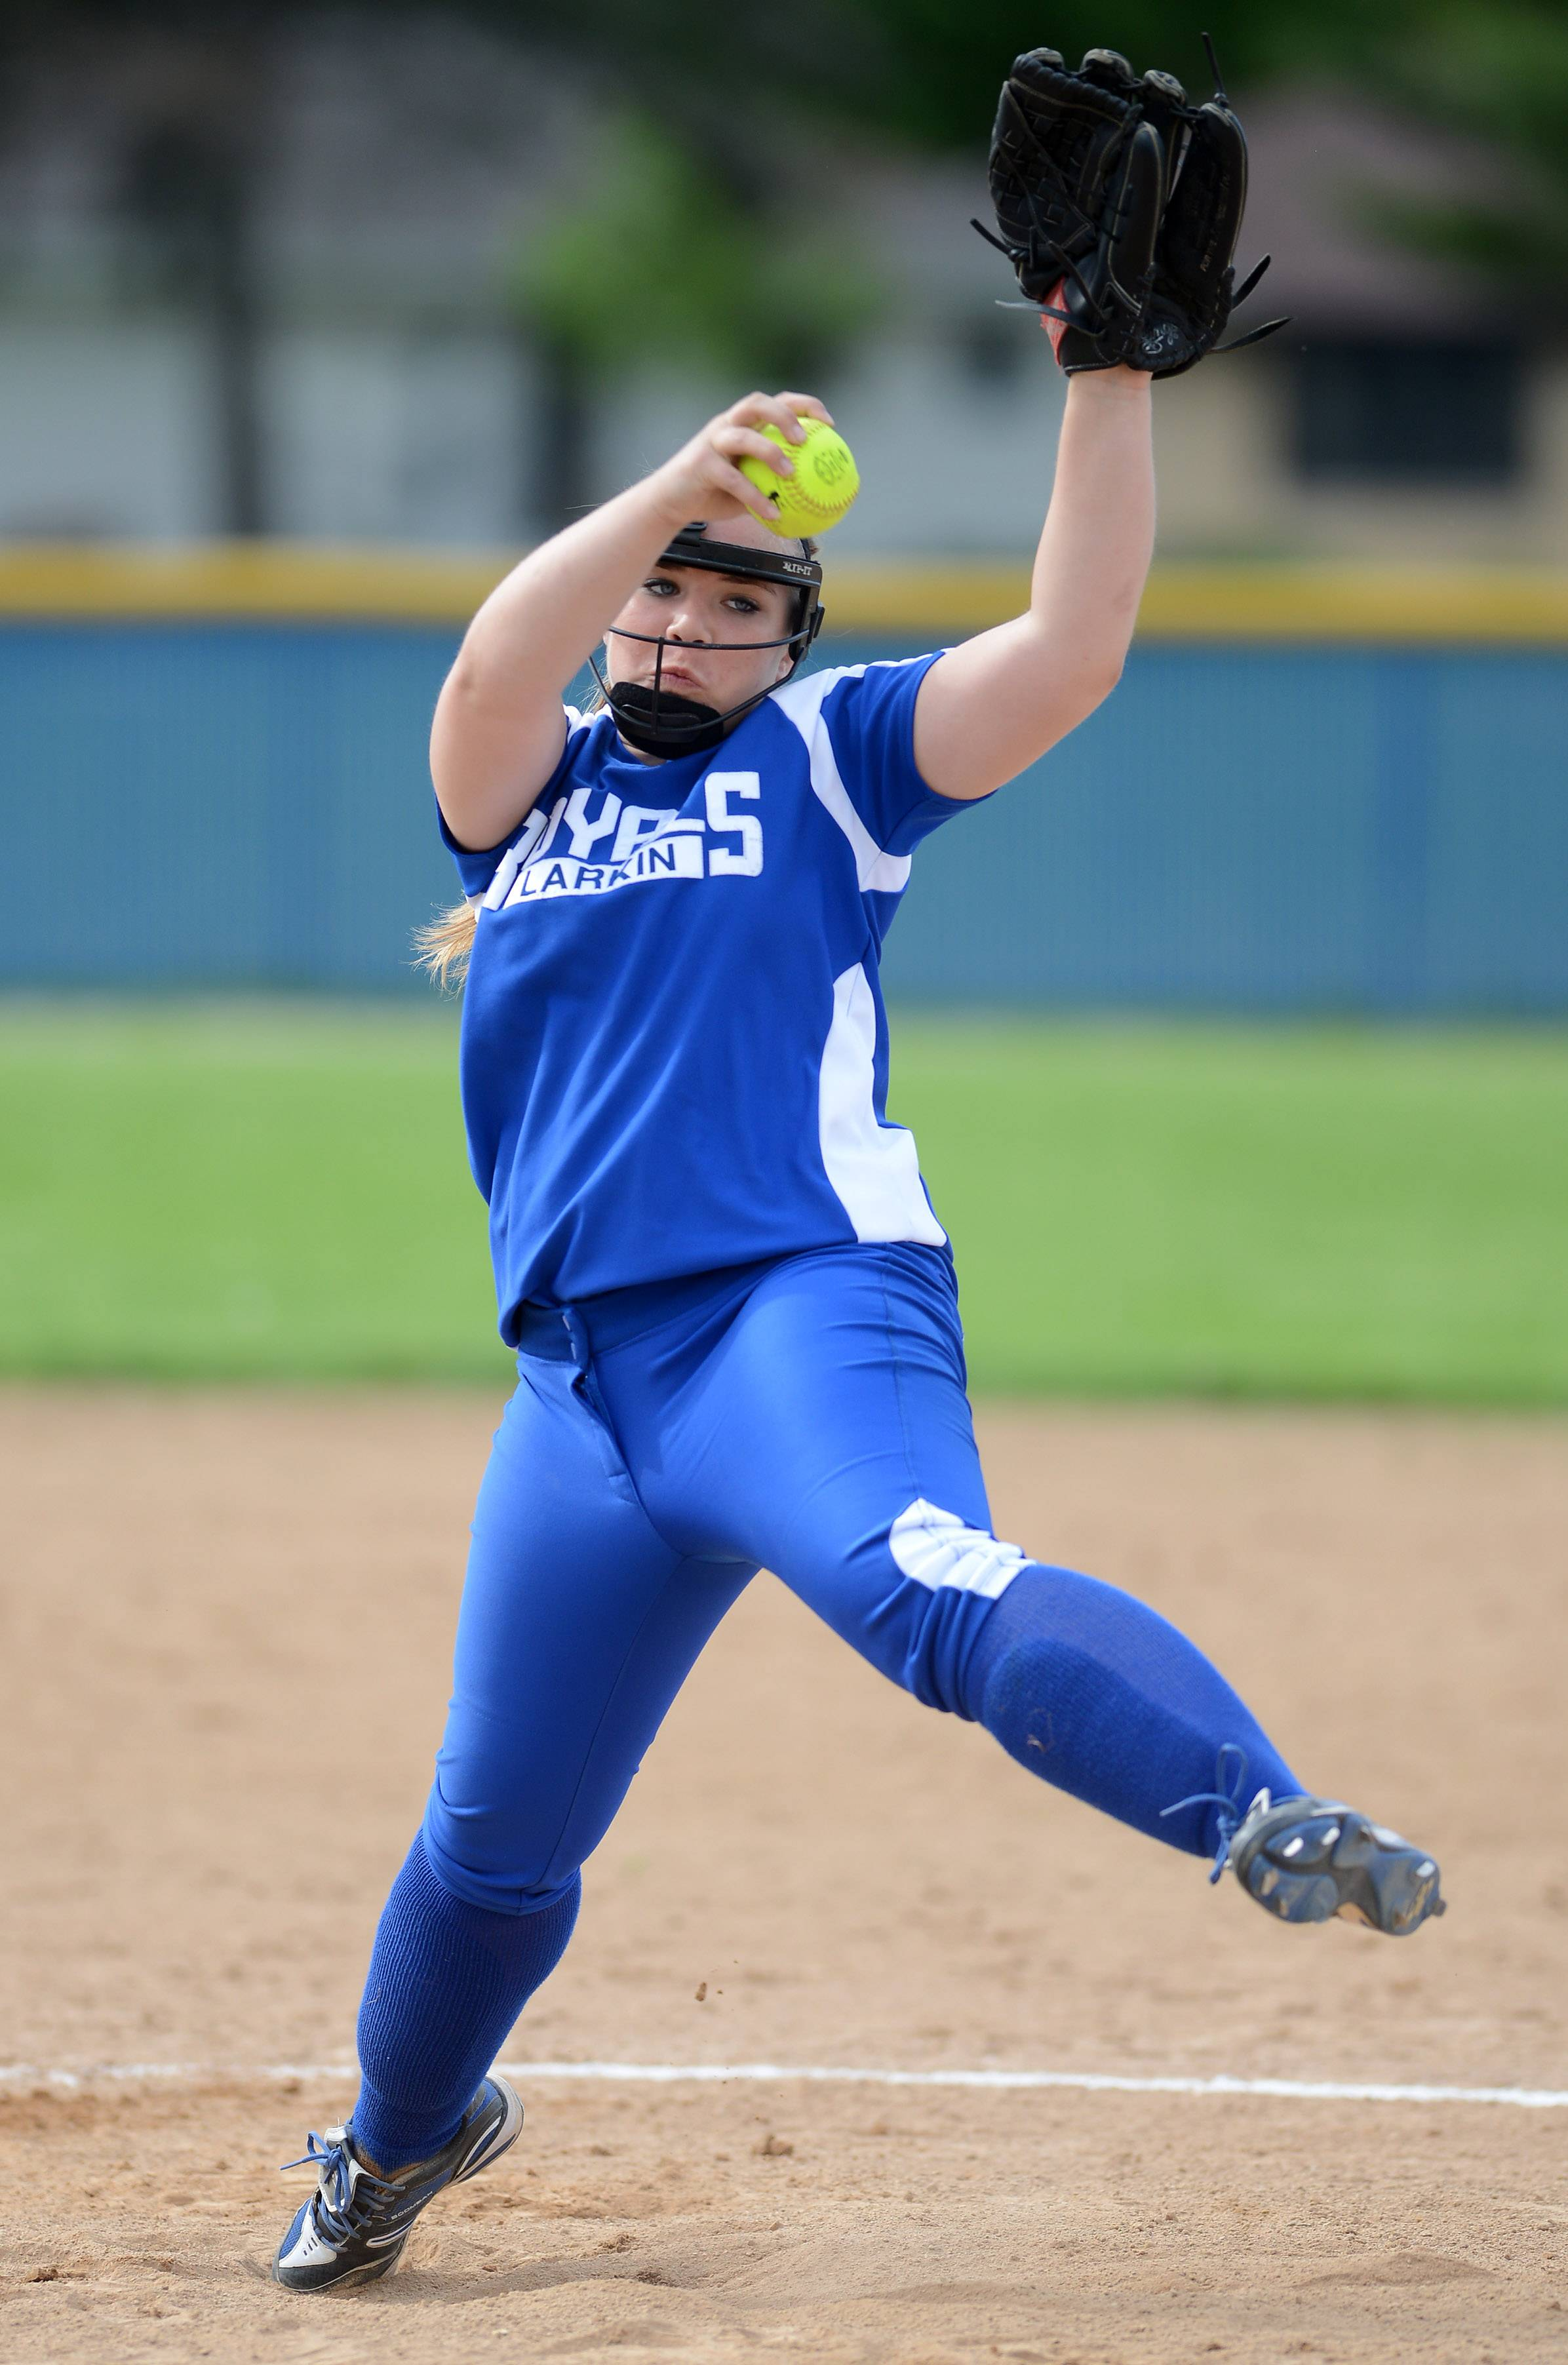 Larkin's Sarah Hansen (12) delivers a pitch during Thursday's game at Larkin in Elgin.